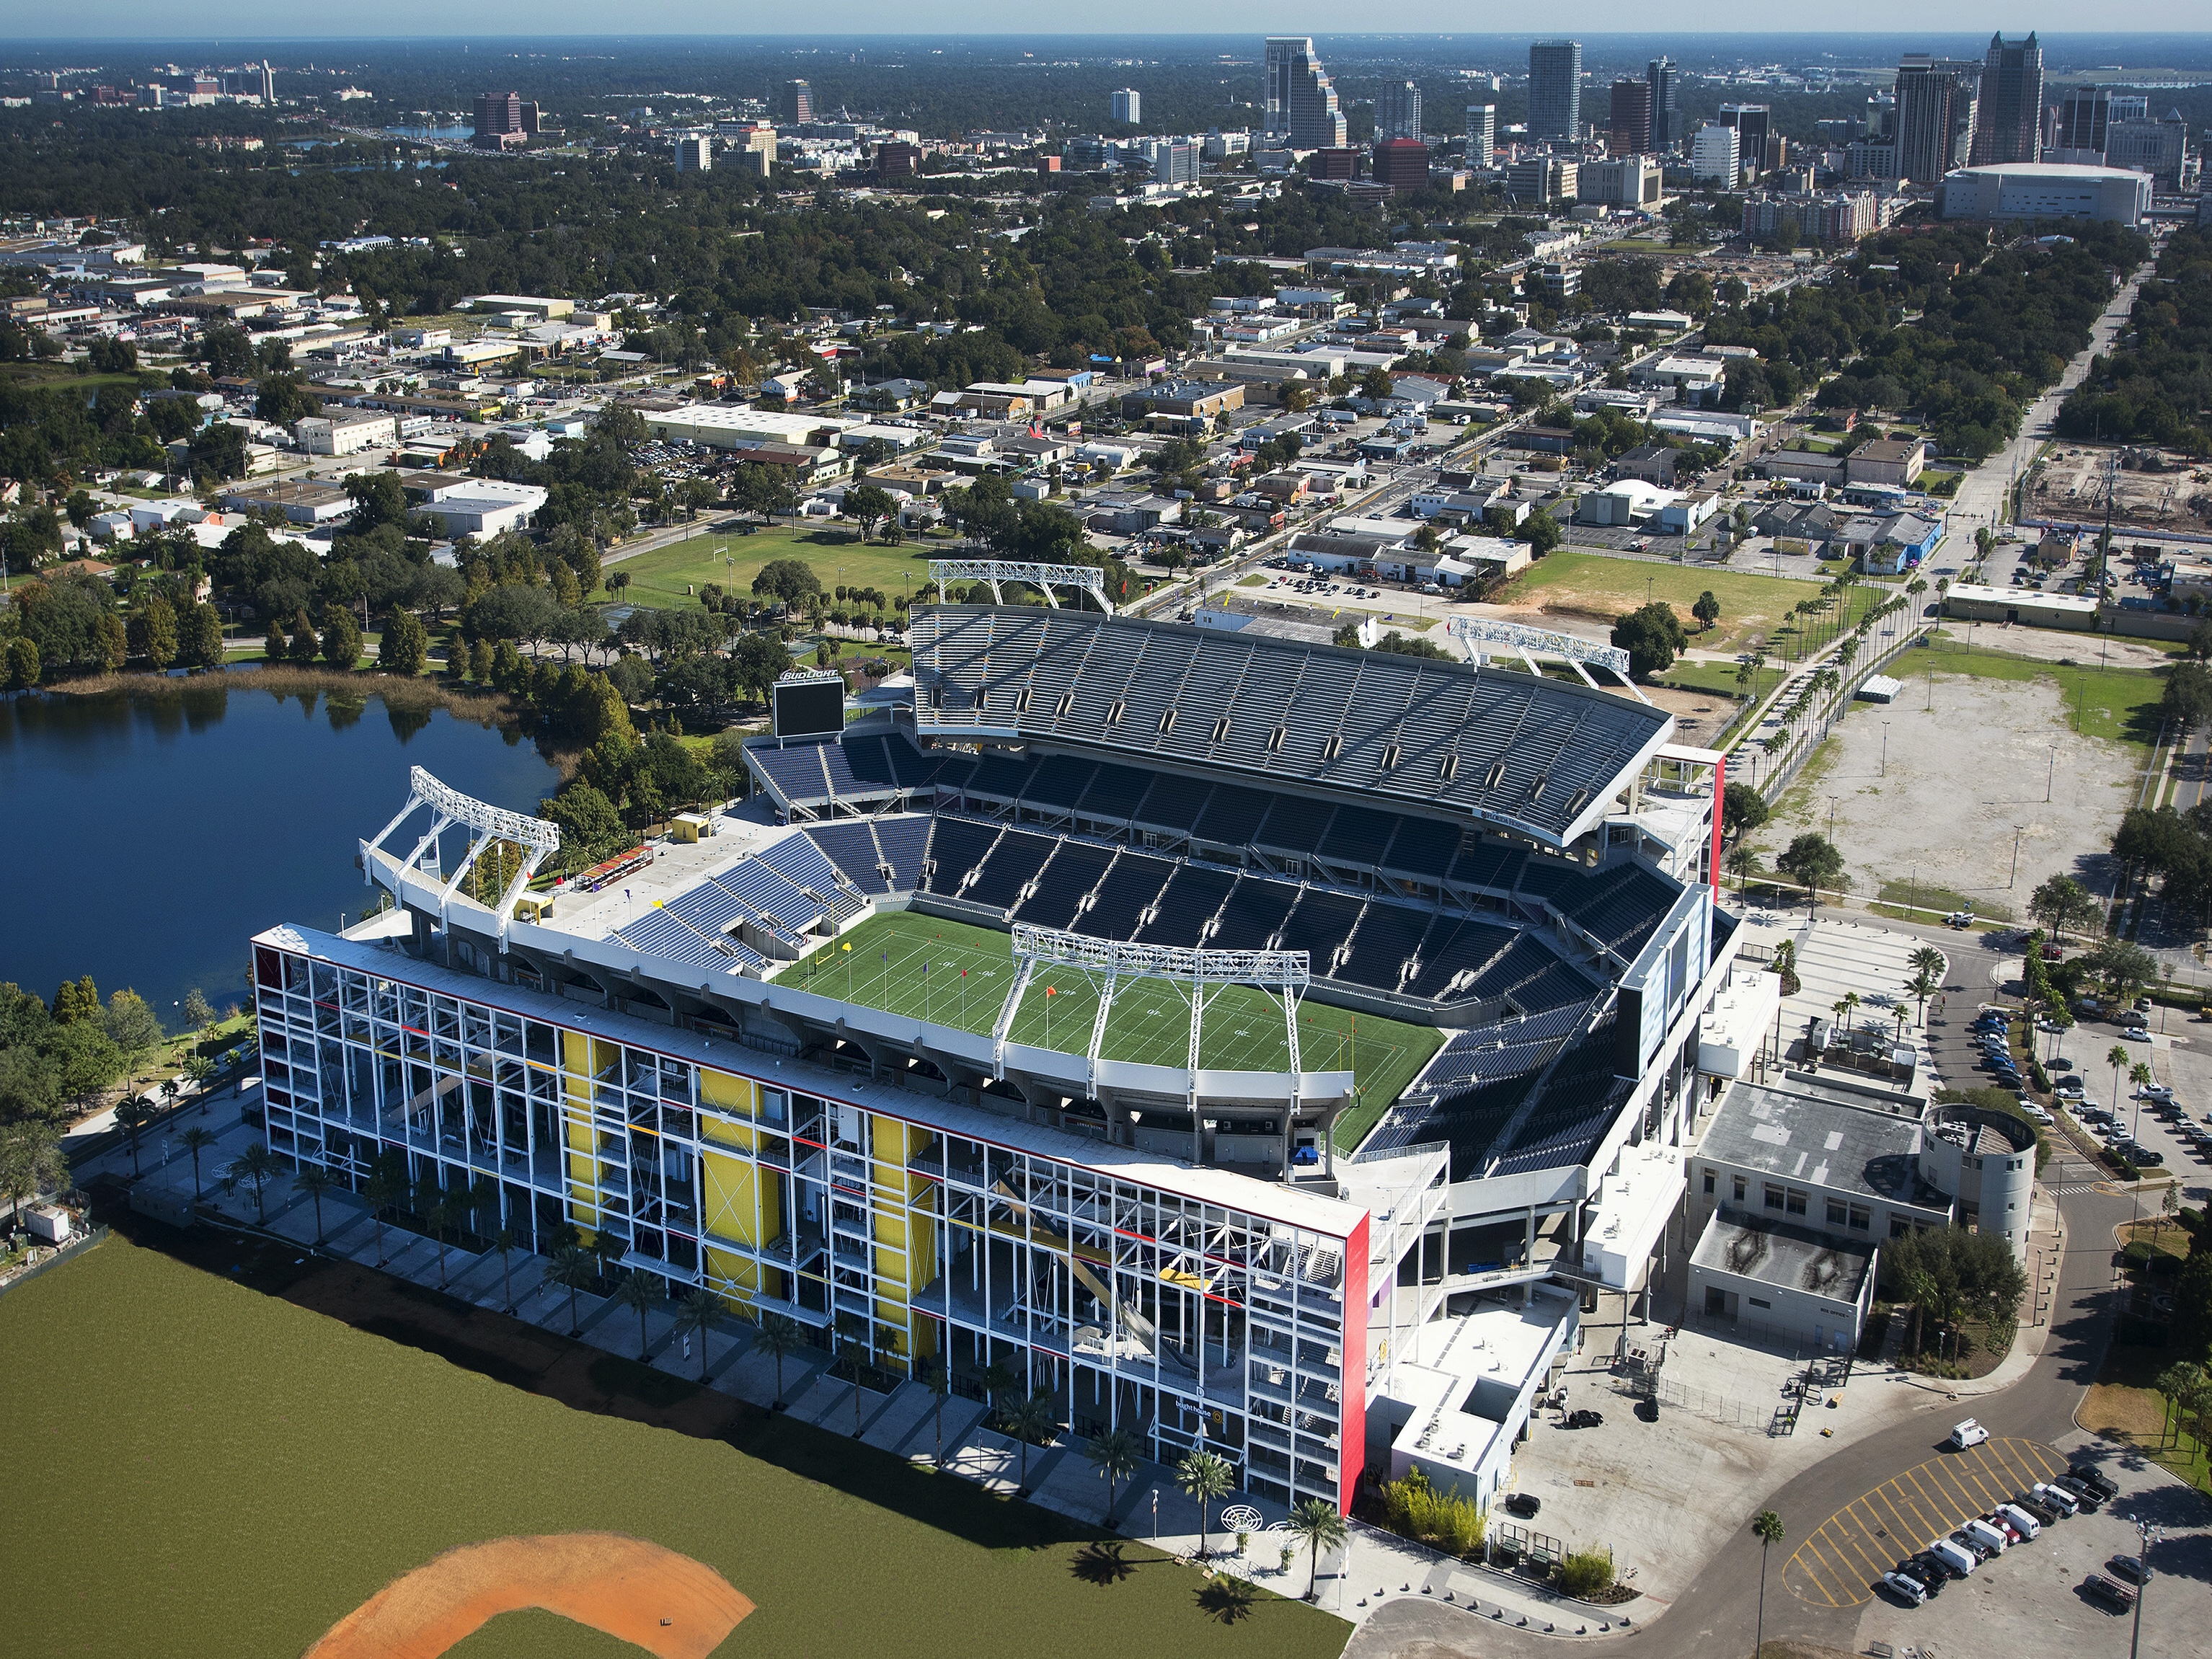 Camping World Stadium in Downtown Orlando, Florida